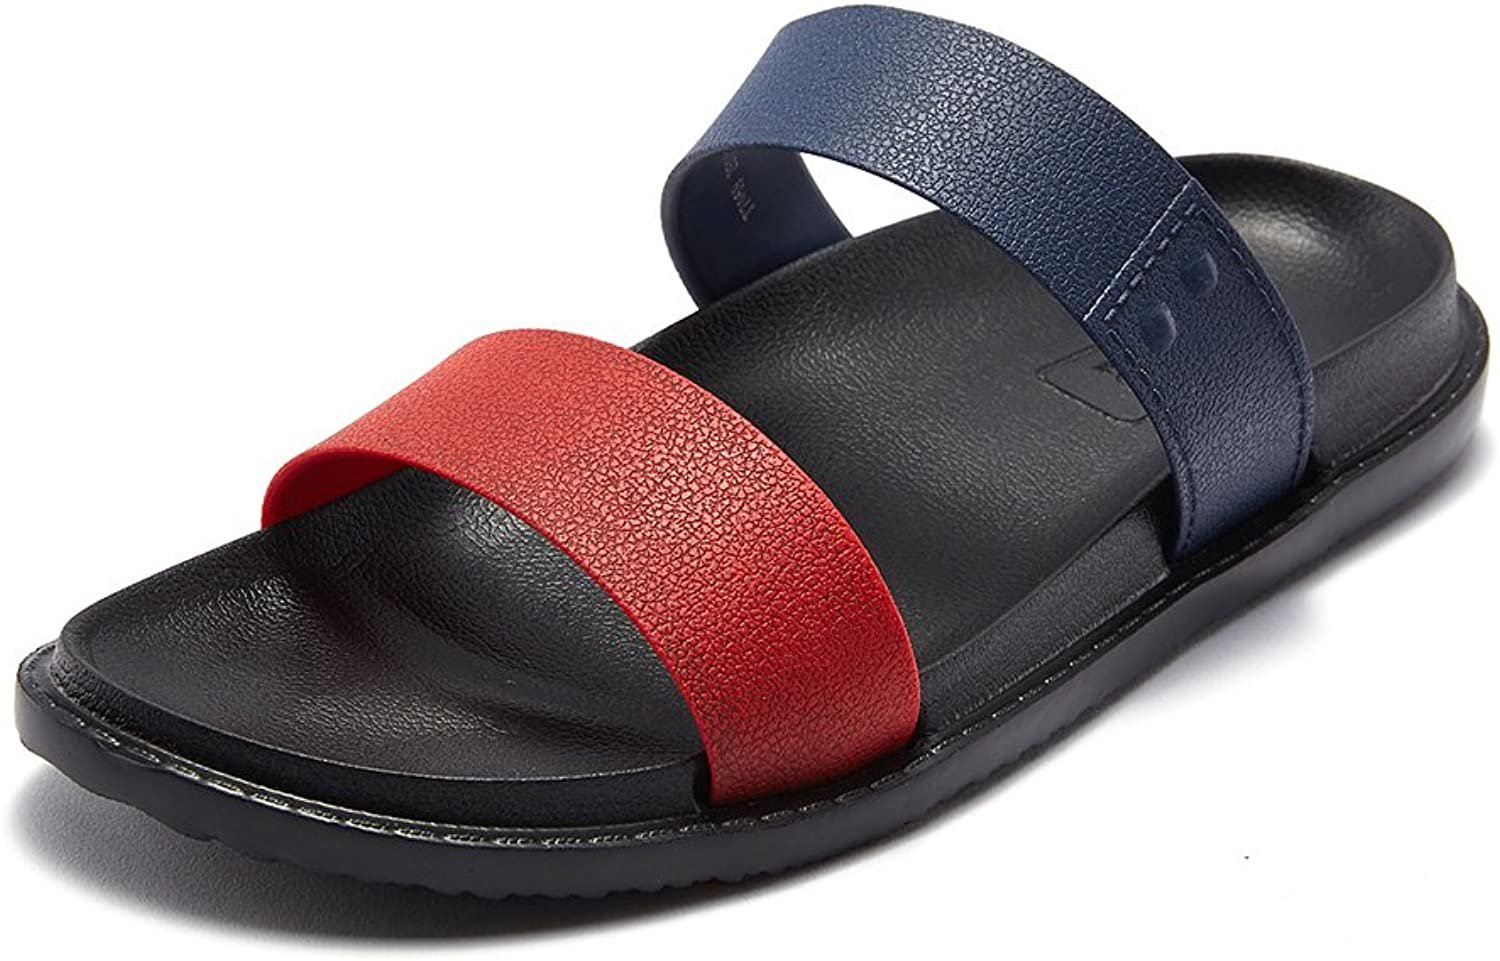 Outdoor Slipper Sandal Ankle Strap Sandals Man Beach shoes man summer slipper Multicolor (38-44 Size) (color   Red, Size   38)